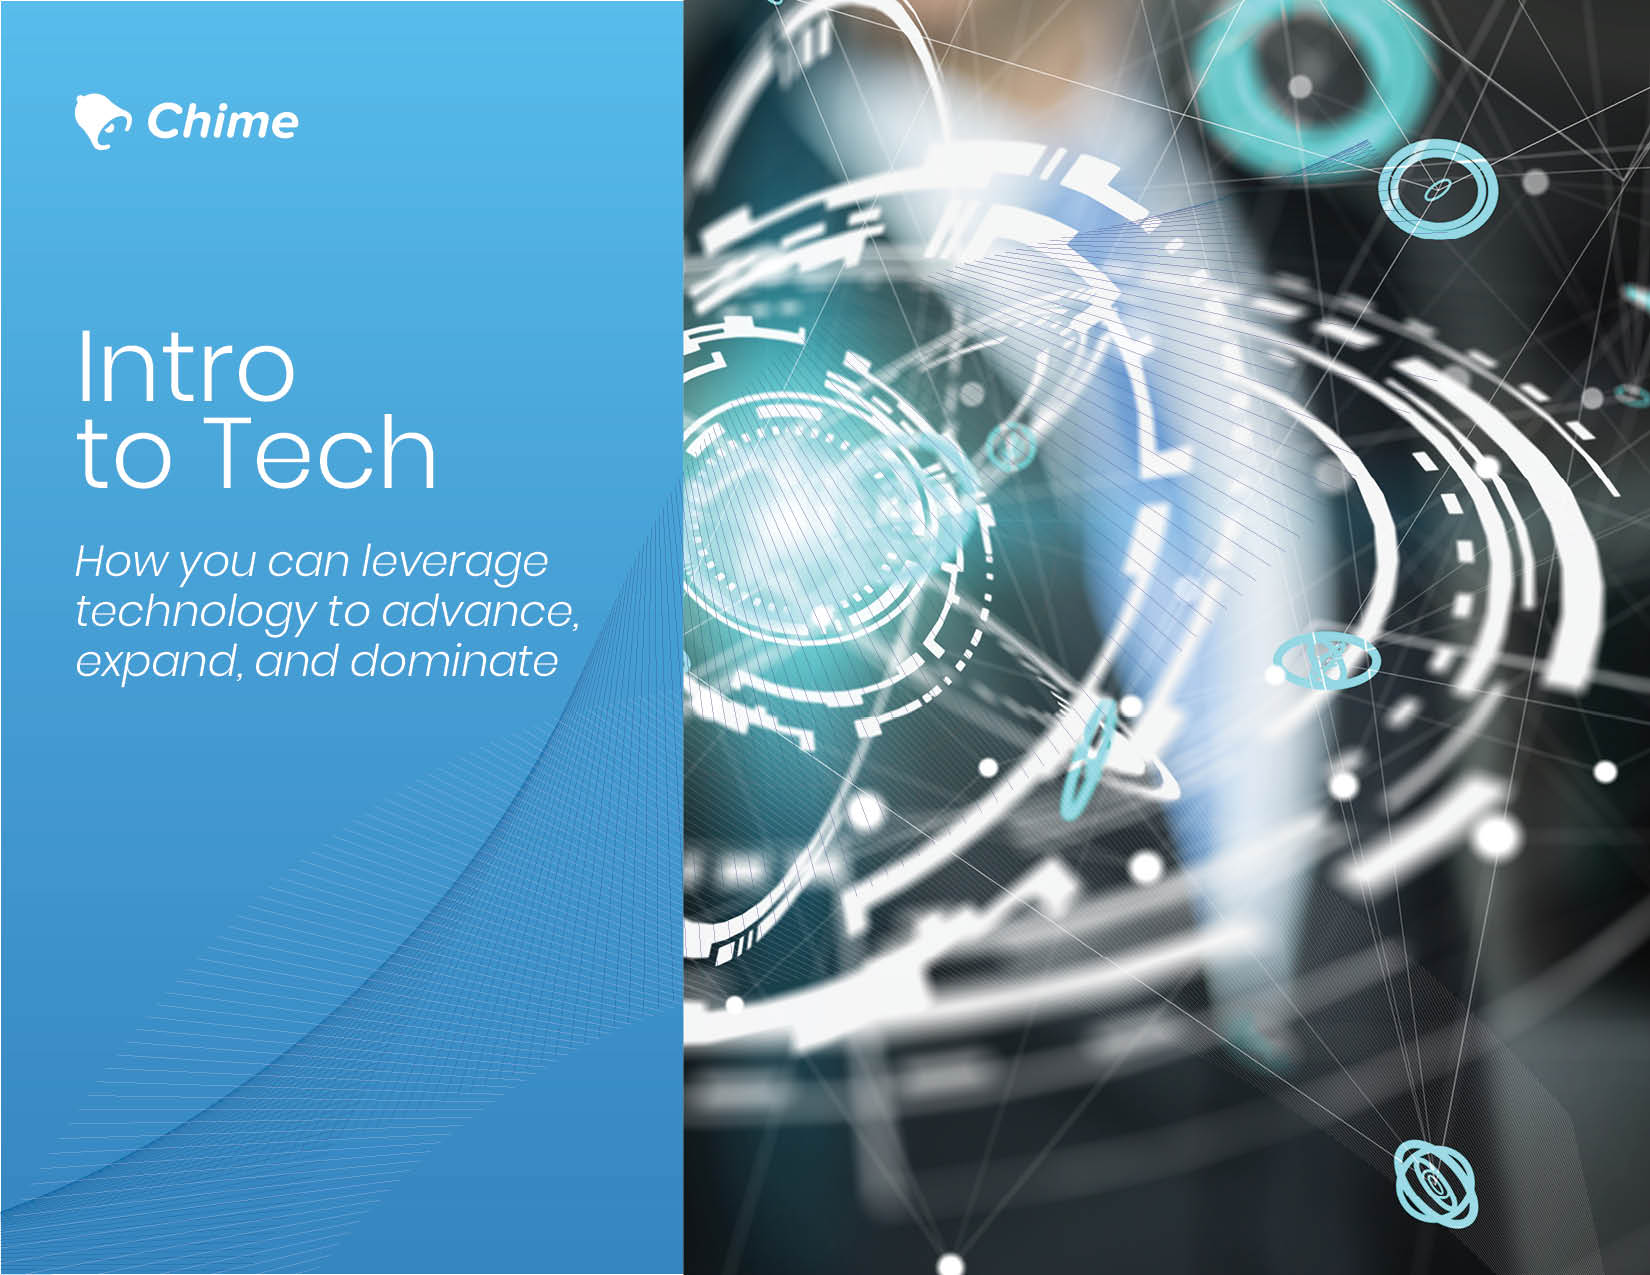 Intro to Tech cover.jpg